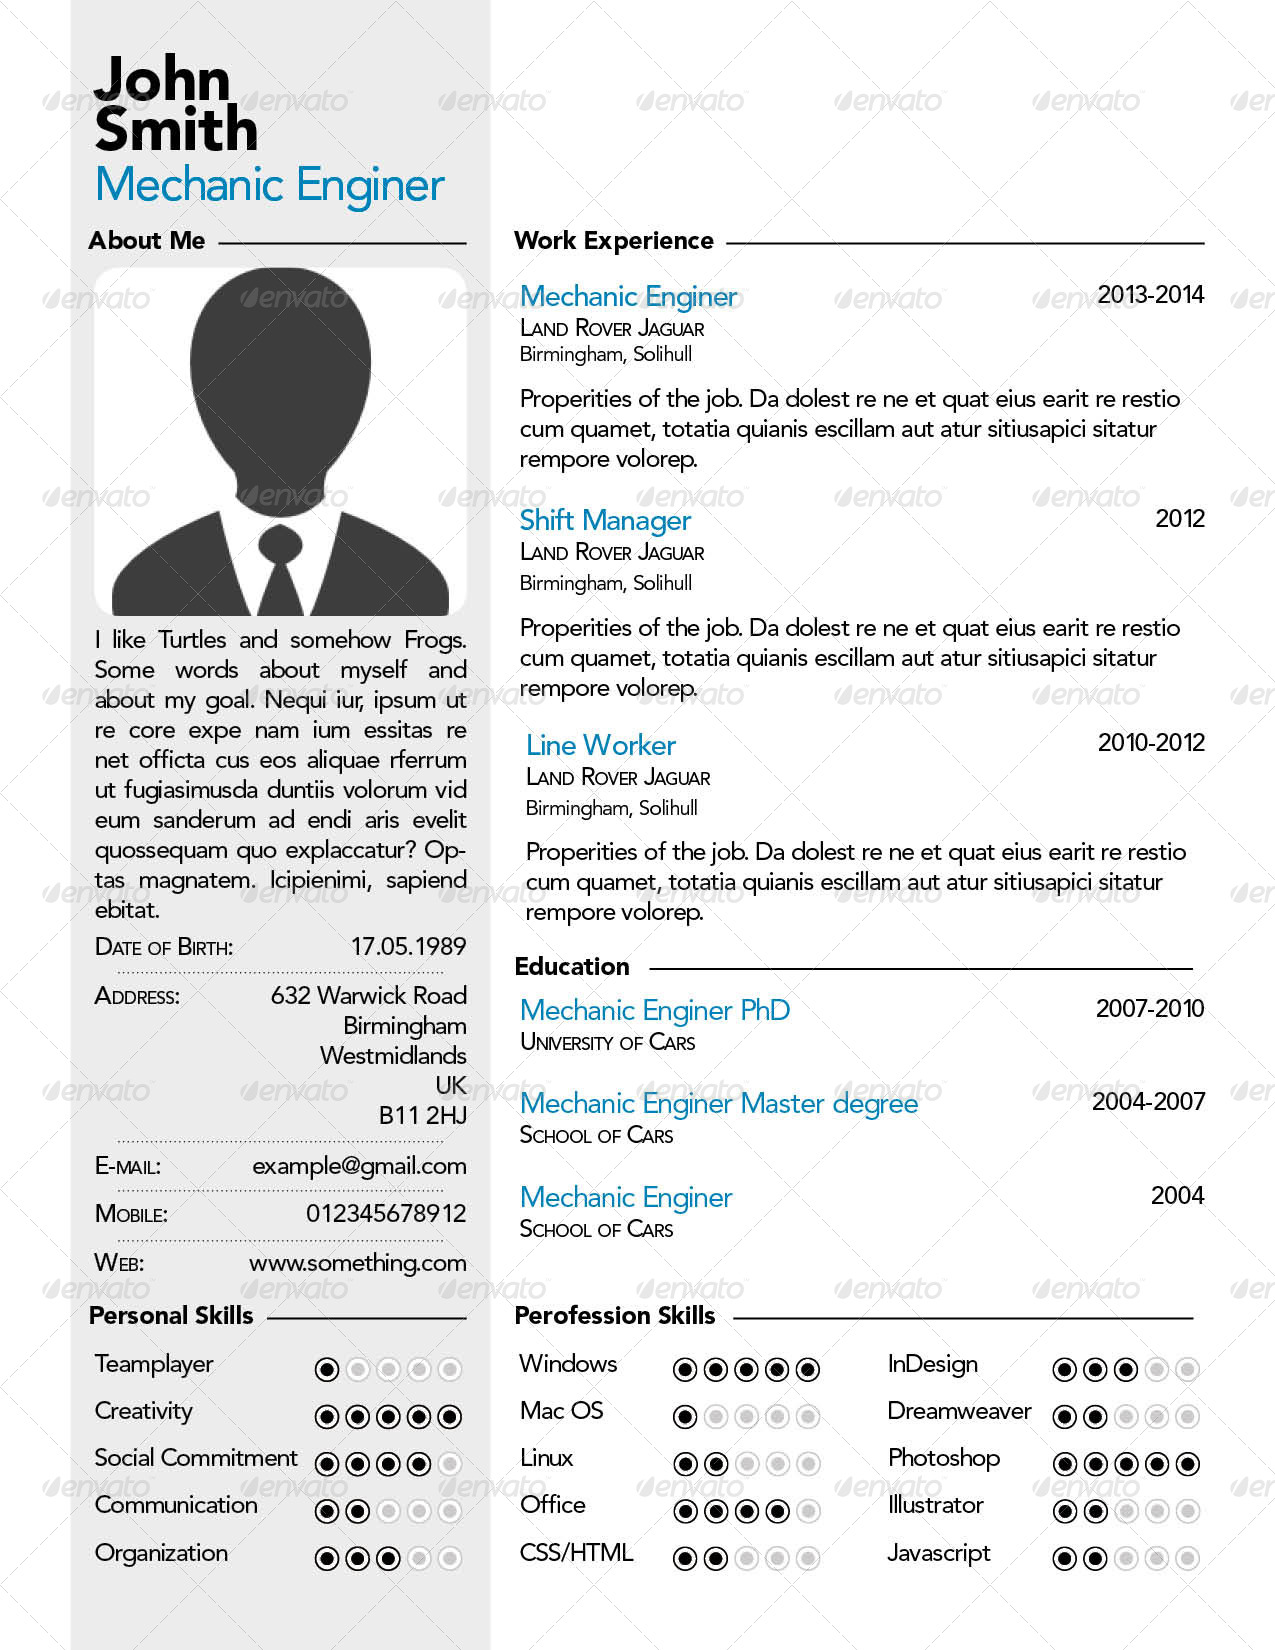 simple professional resume cv by szeszil graphicriver simple professional resume letter jpg